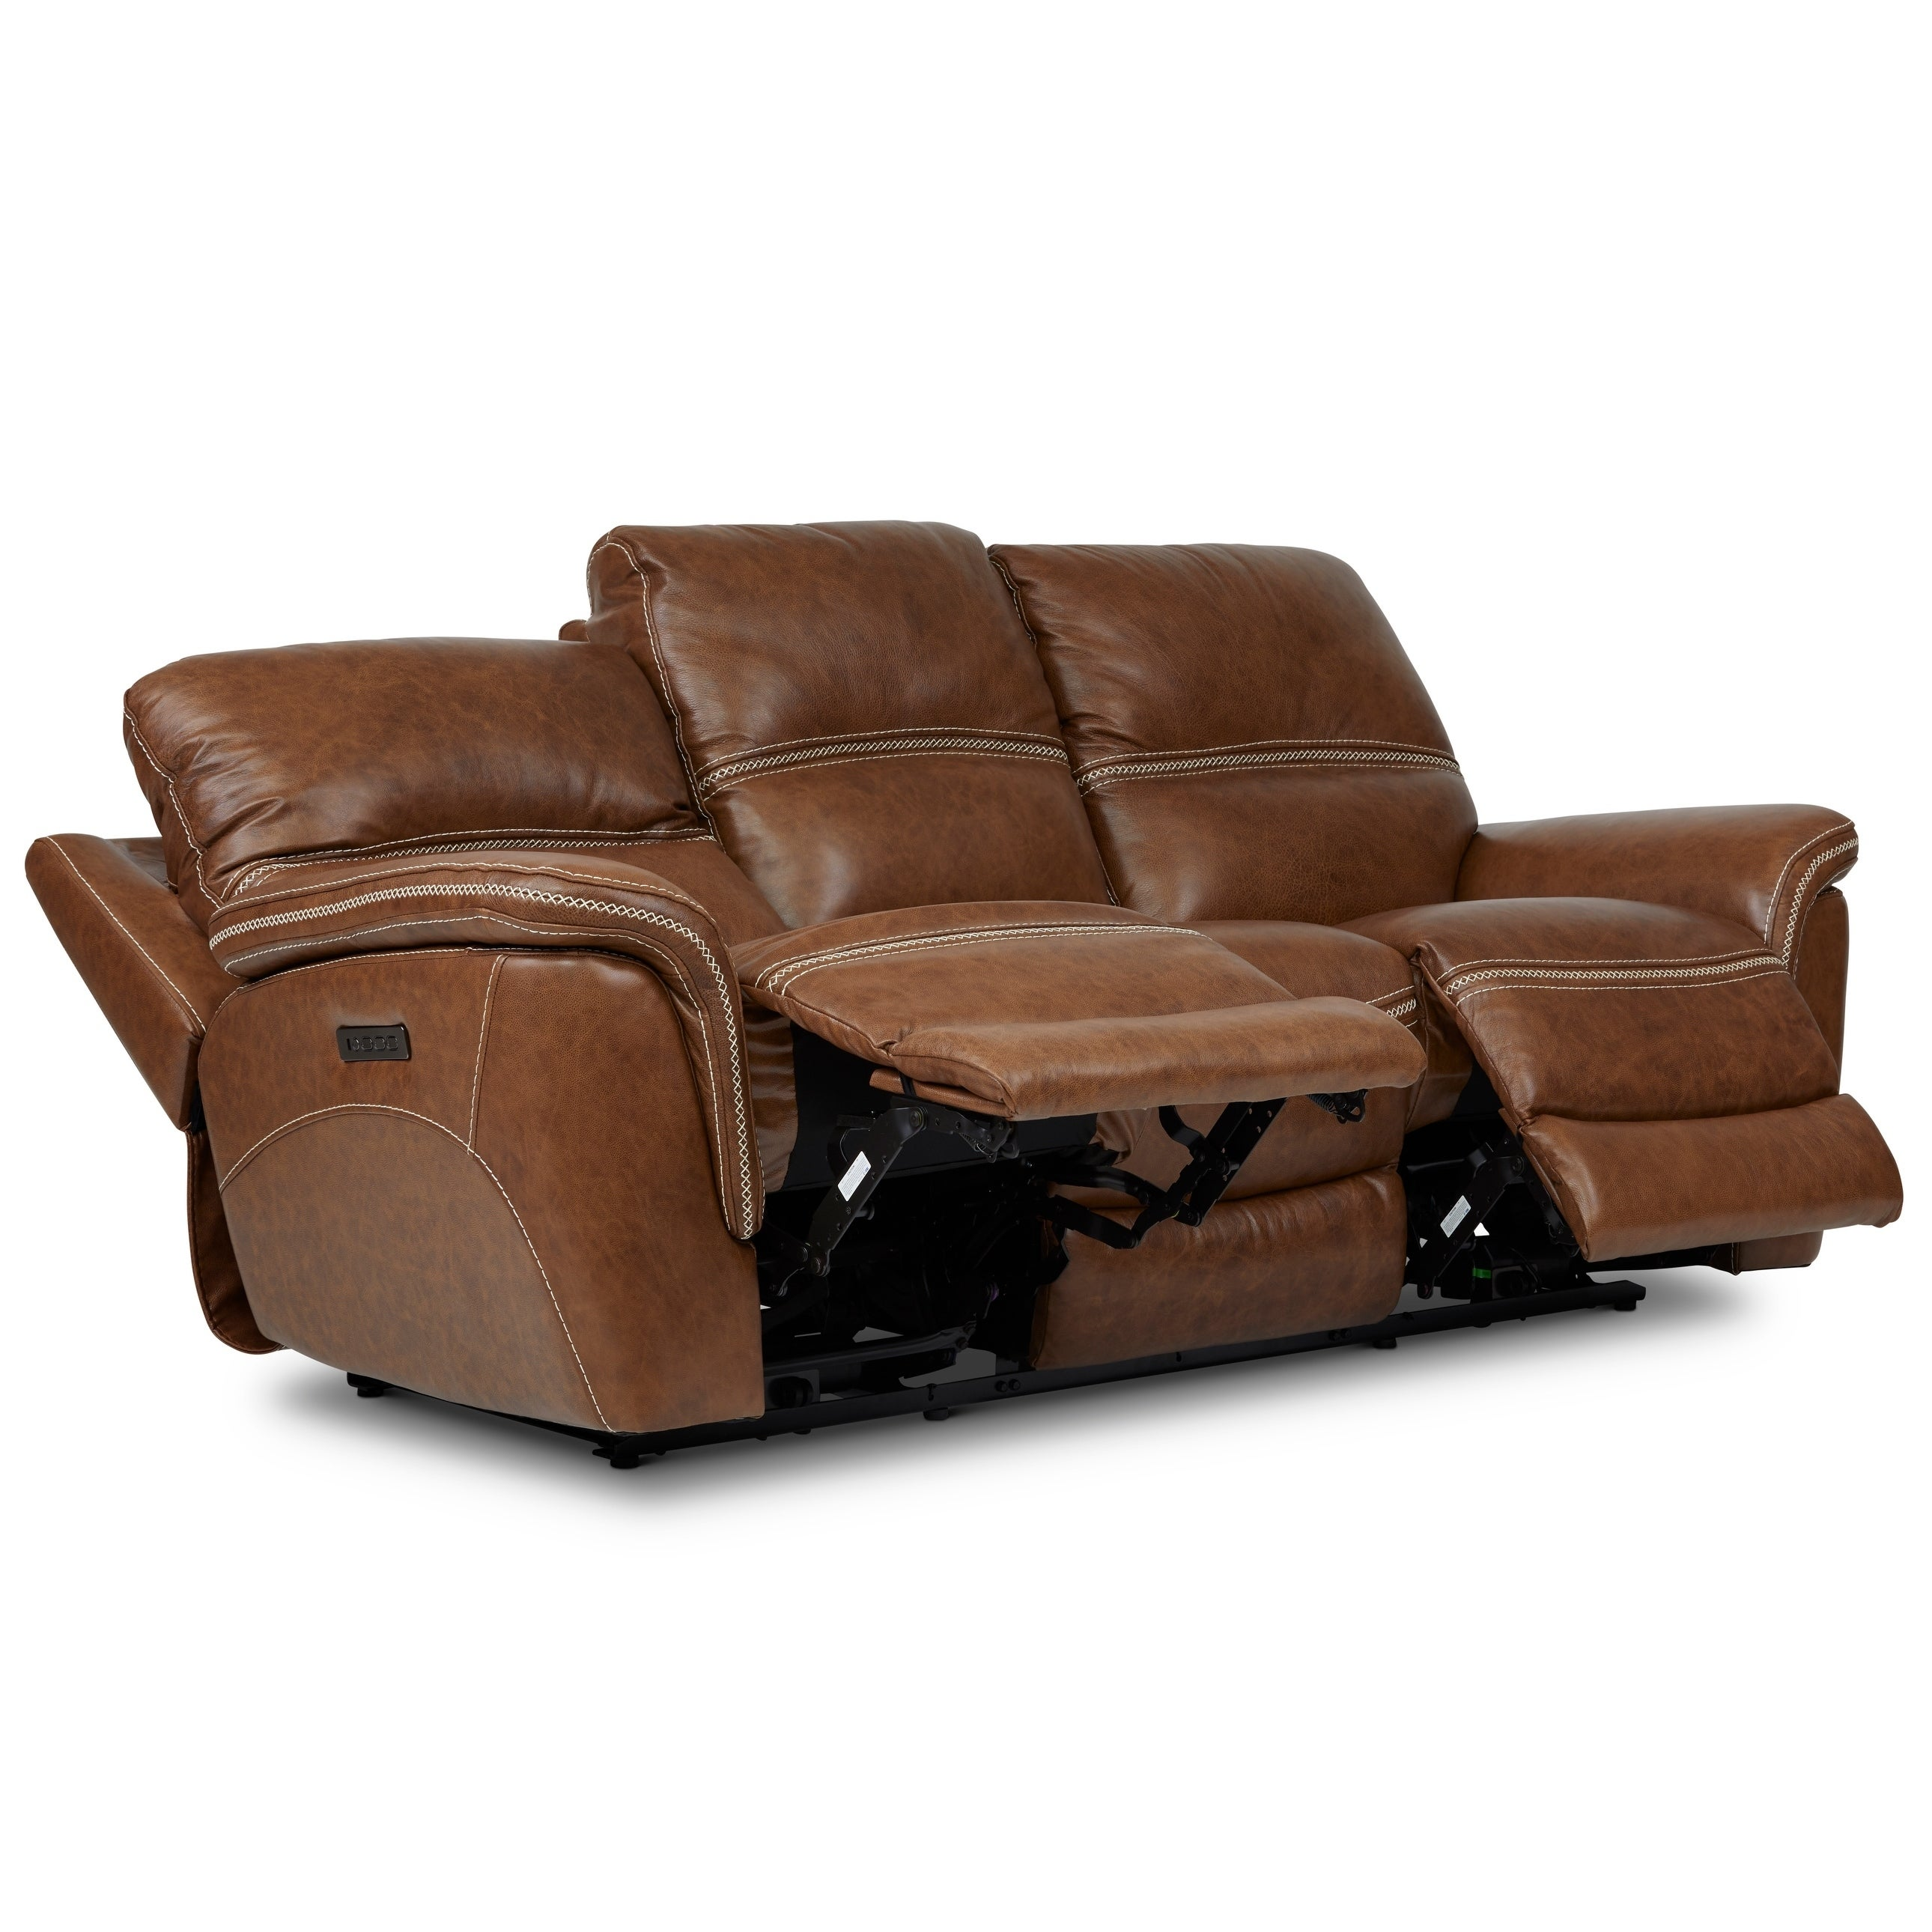 Mason Leather Reclining Sofa with Power Headrest and Lumbar Support - 40  inches high x 90 inches wide x 40 inches deep